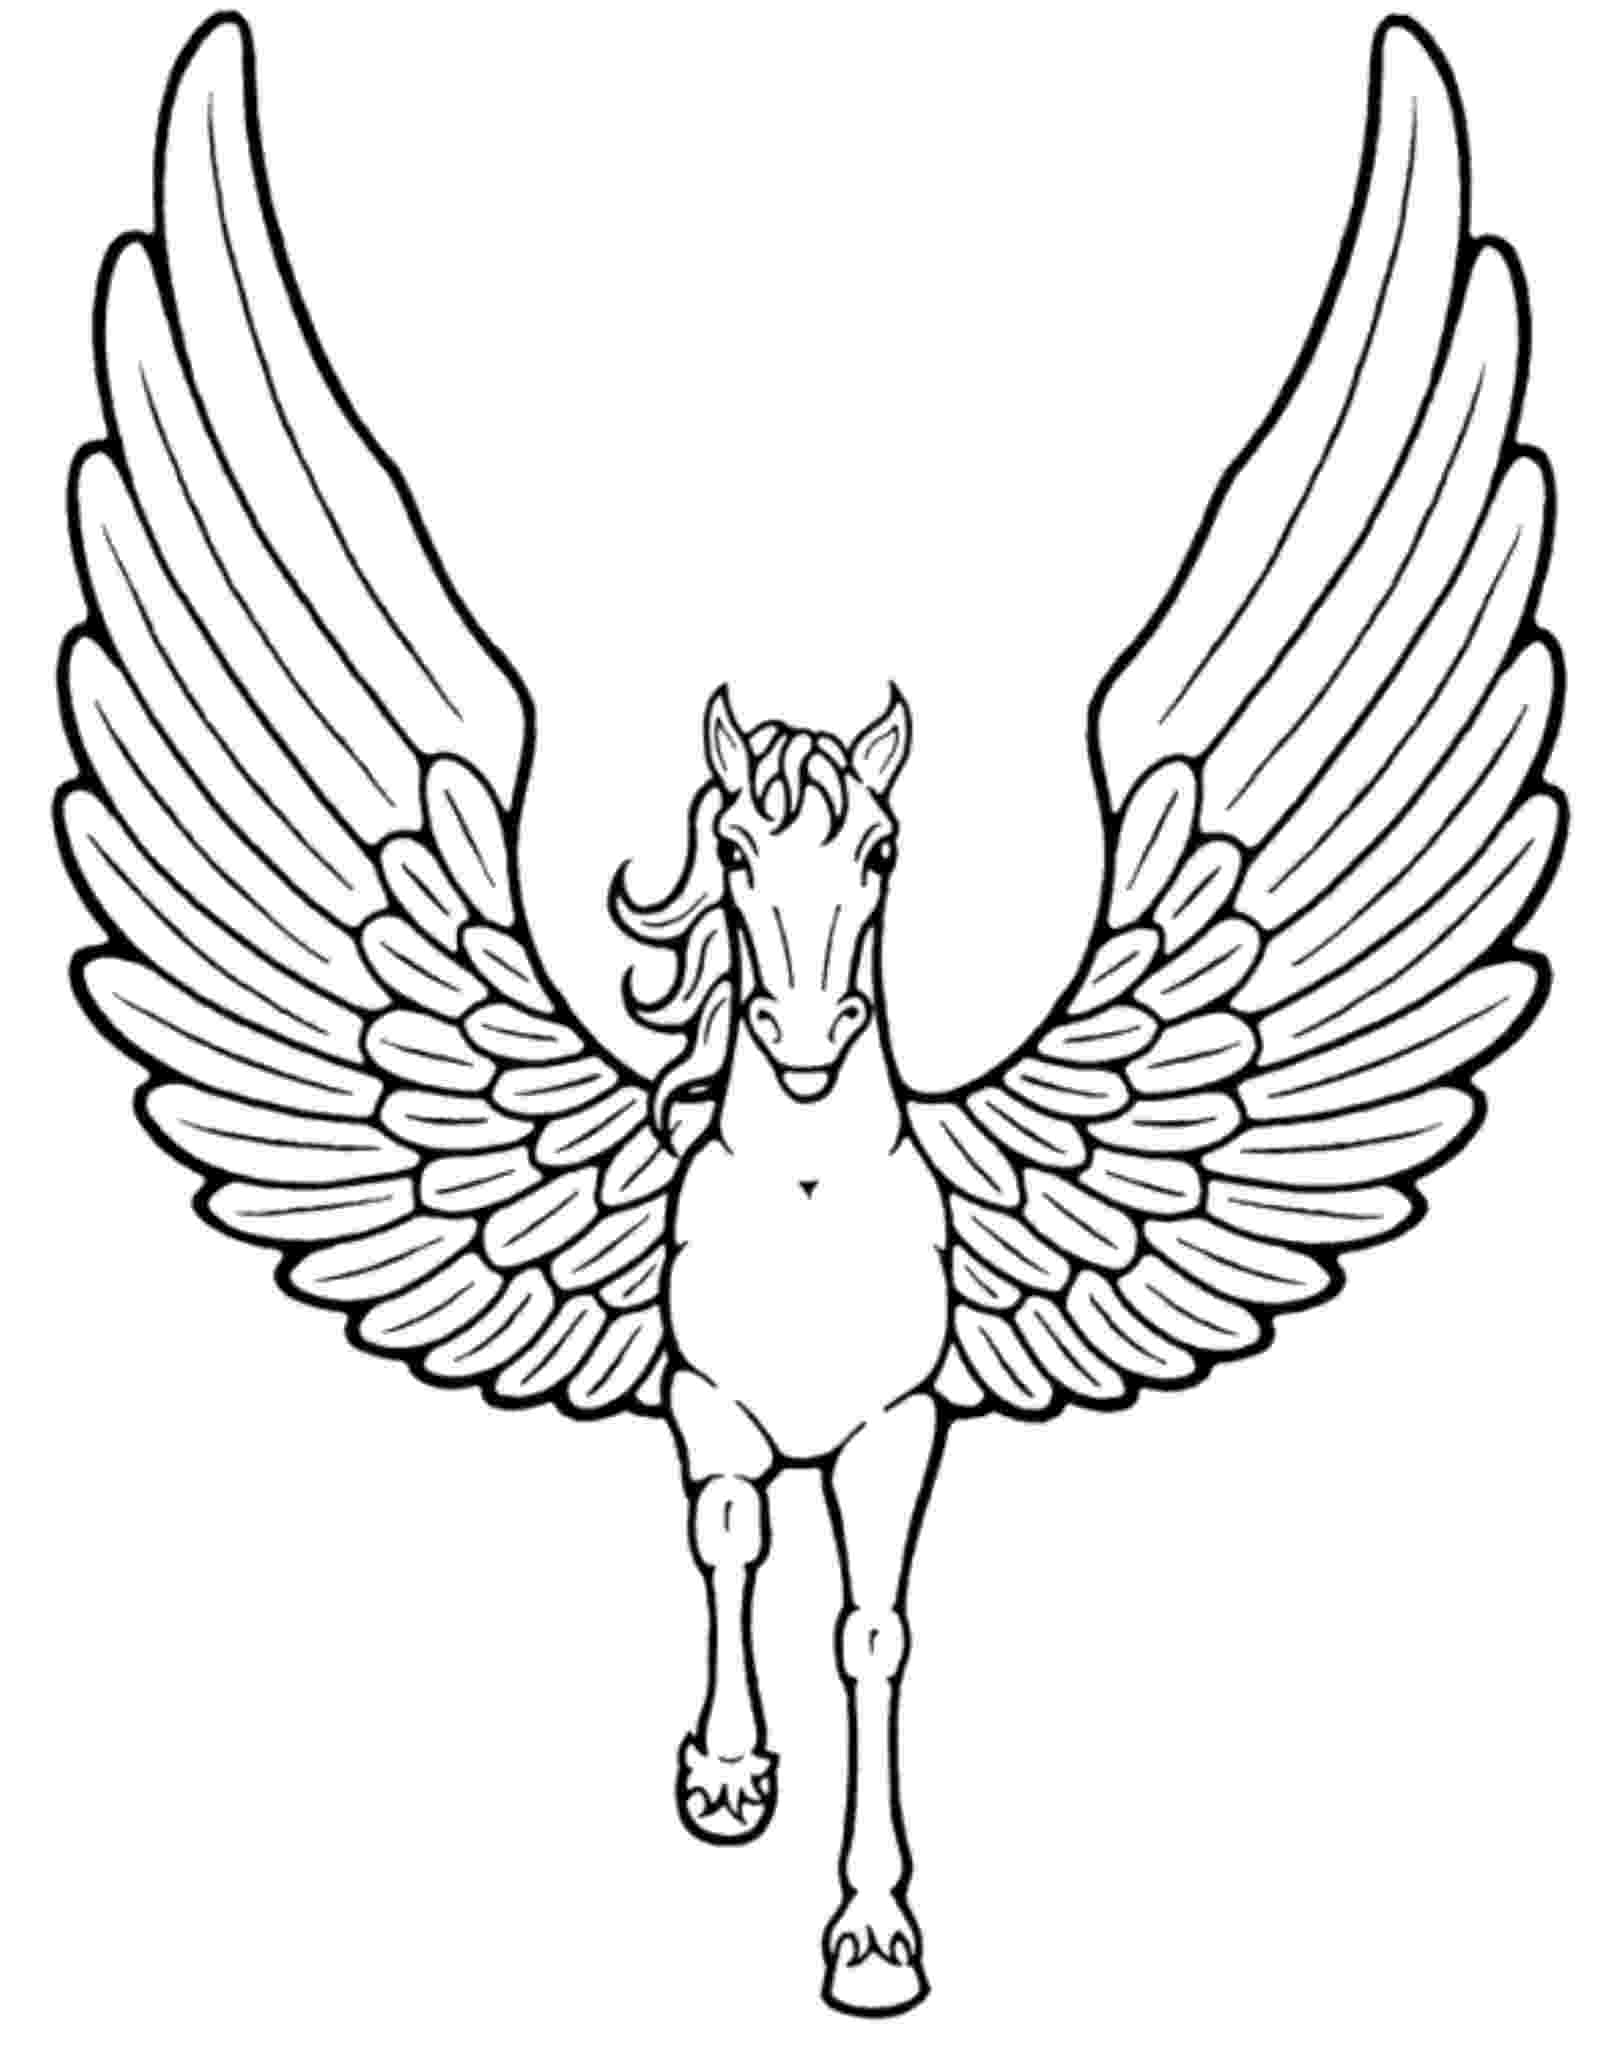 unicorn printable coloring pages free printable unicorn coloring pages kids unicorn coloring printable pages